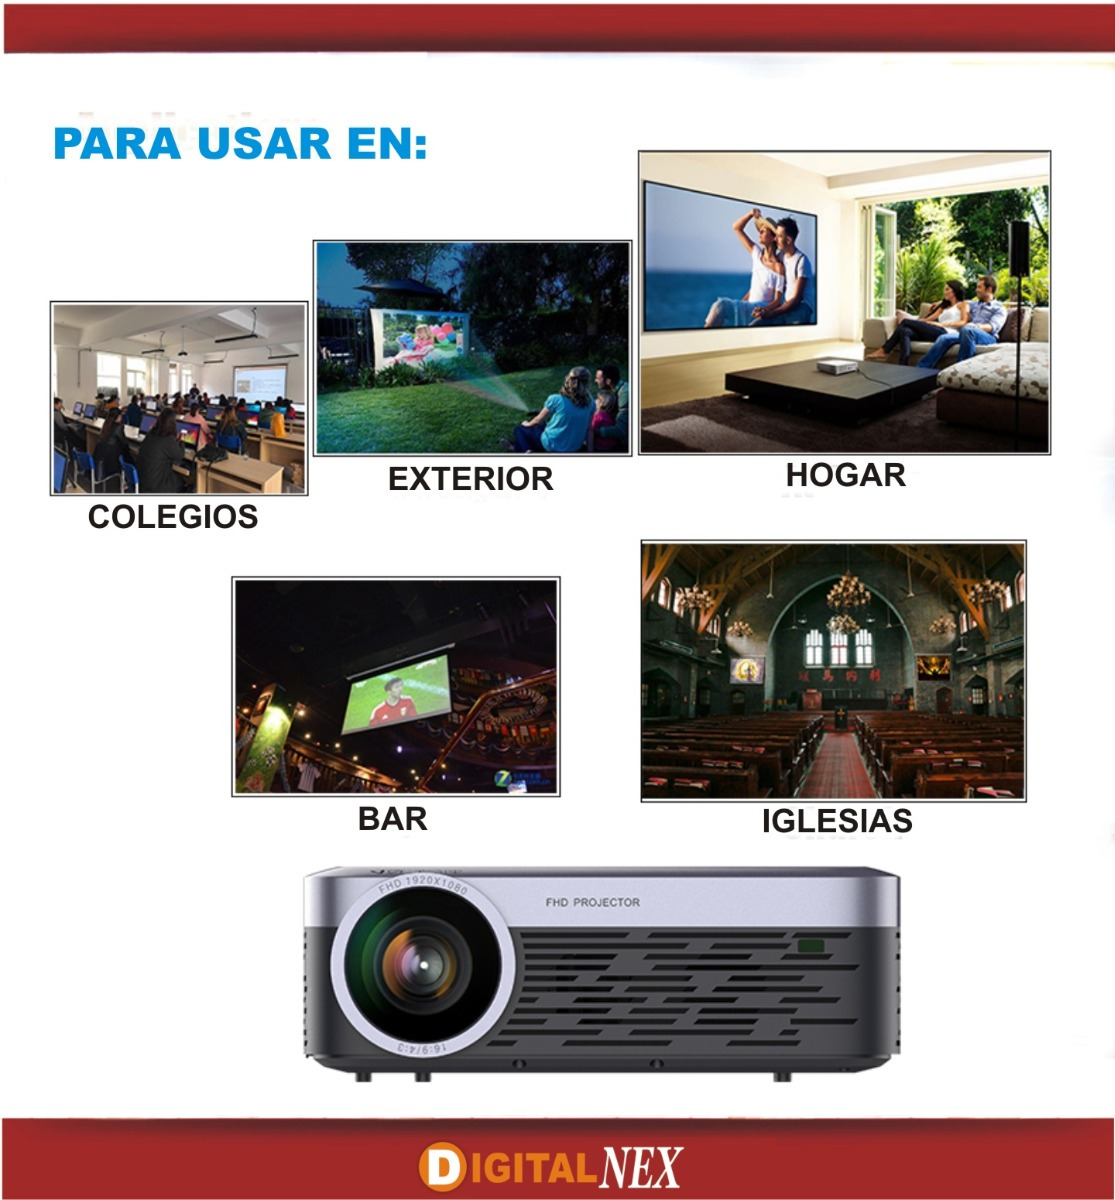 https://http2.mlstatic.com/proyector-led-6500-lumens-wifi-android-51-full-hd-nativo-D_NQ_NP_808792-MLA30991694280_062019-F.jpg